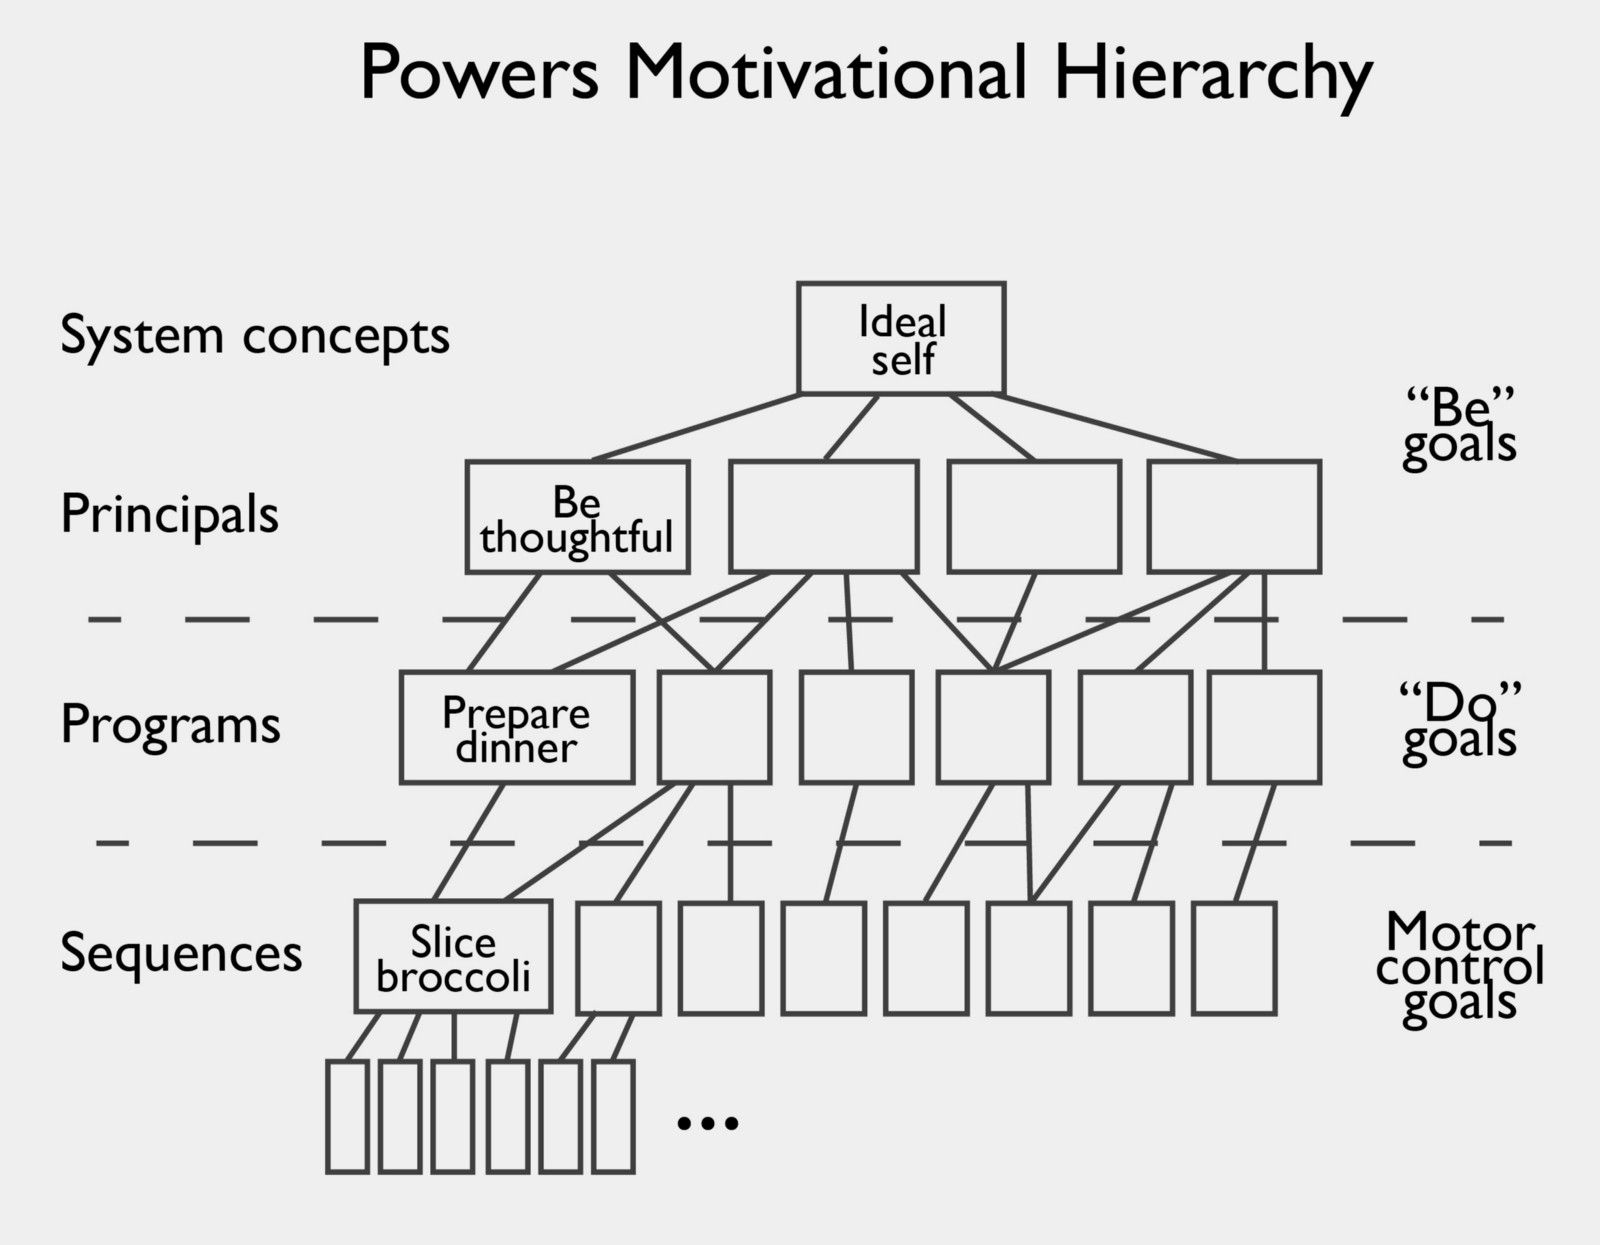 Motivational Hierarchy William Powers